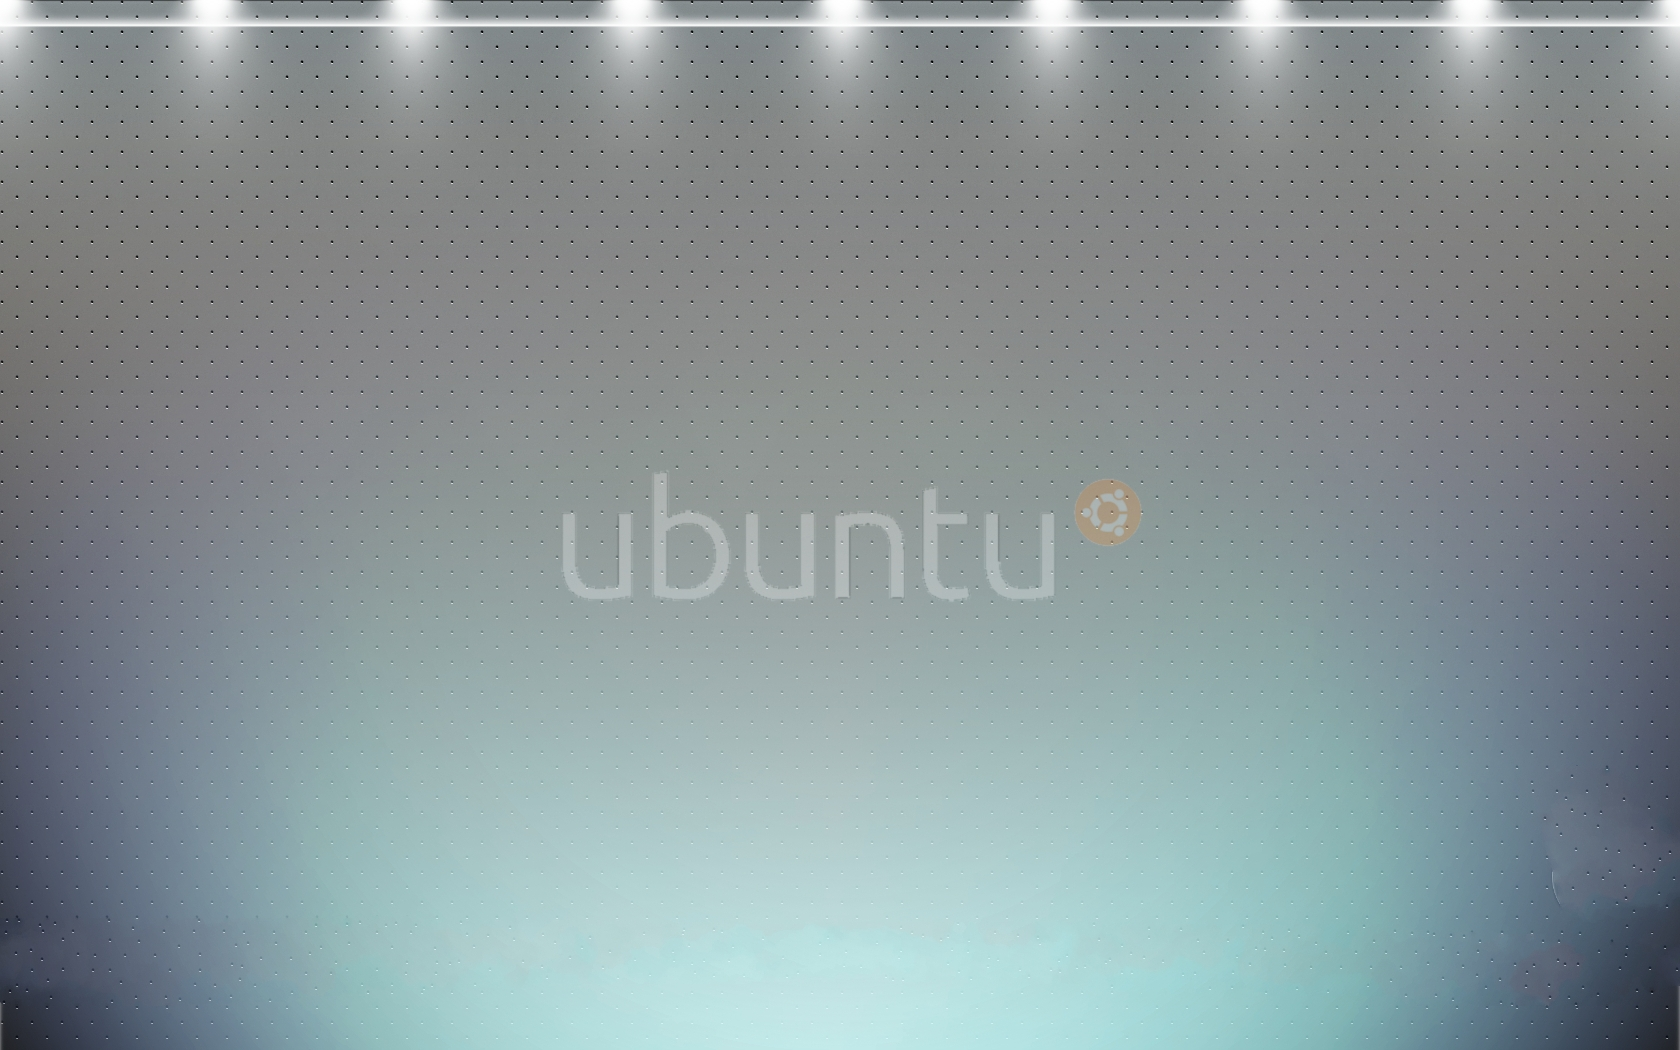 Ubuntu 10.04 Light Wallpaper by janderson3m